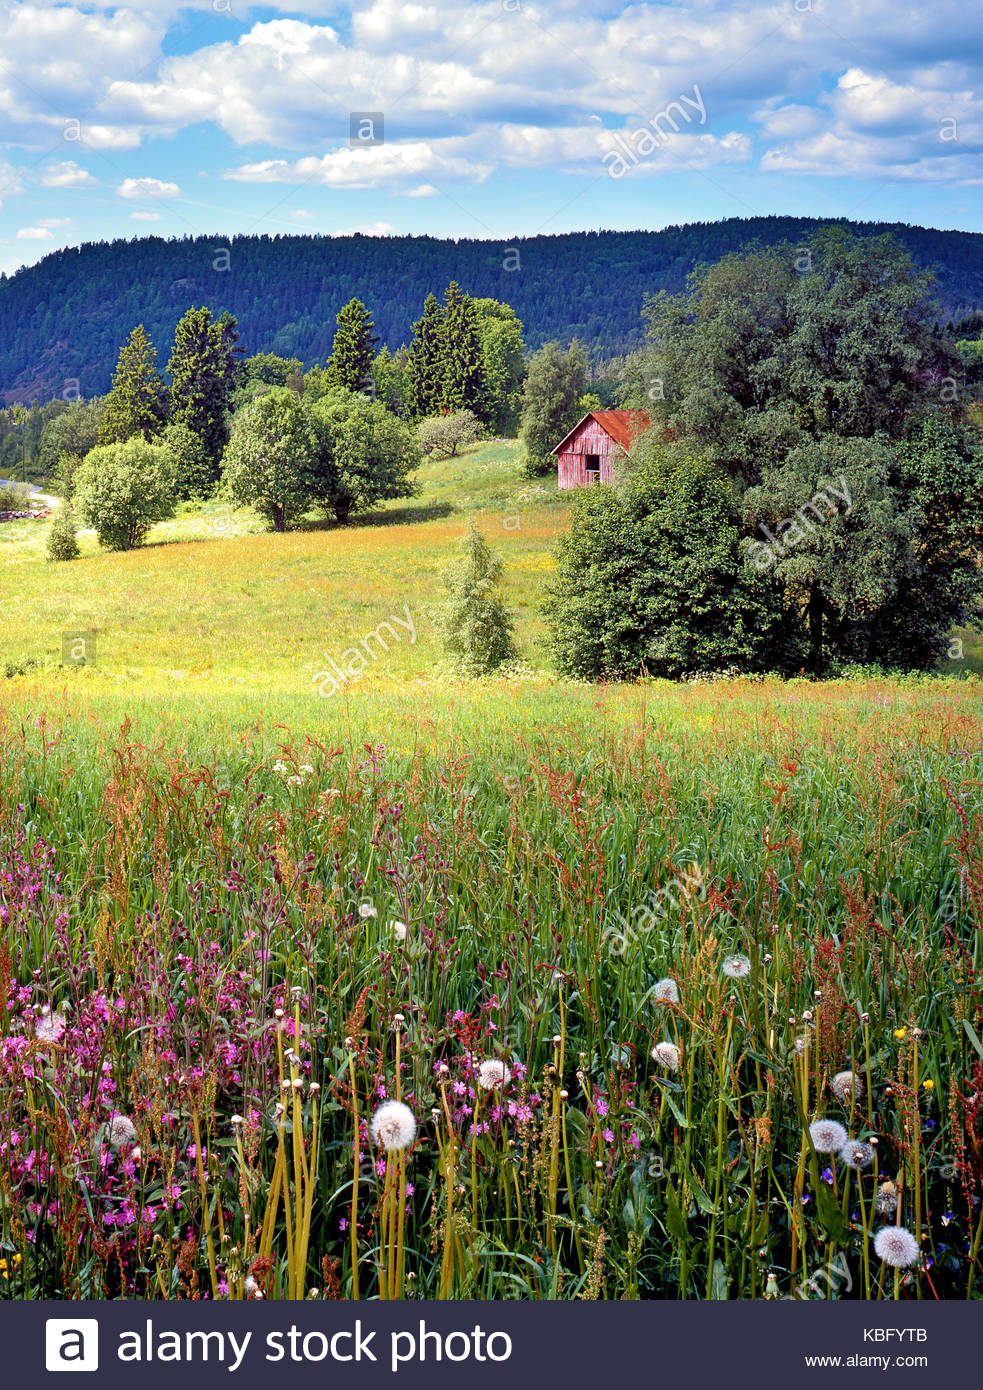 A summer view of the fertile, flowering countryside of South Norway - Stock Image